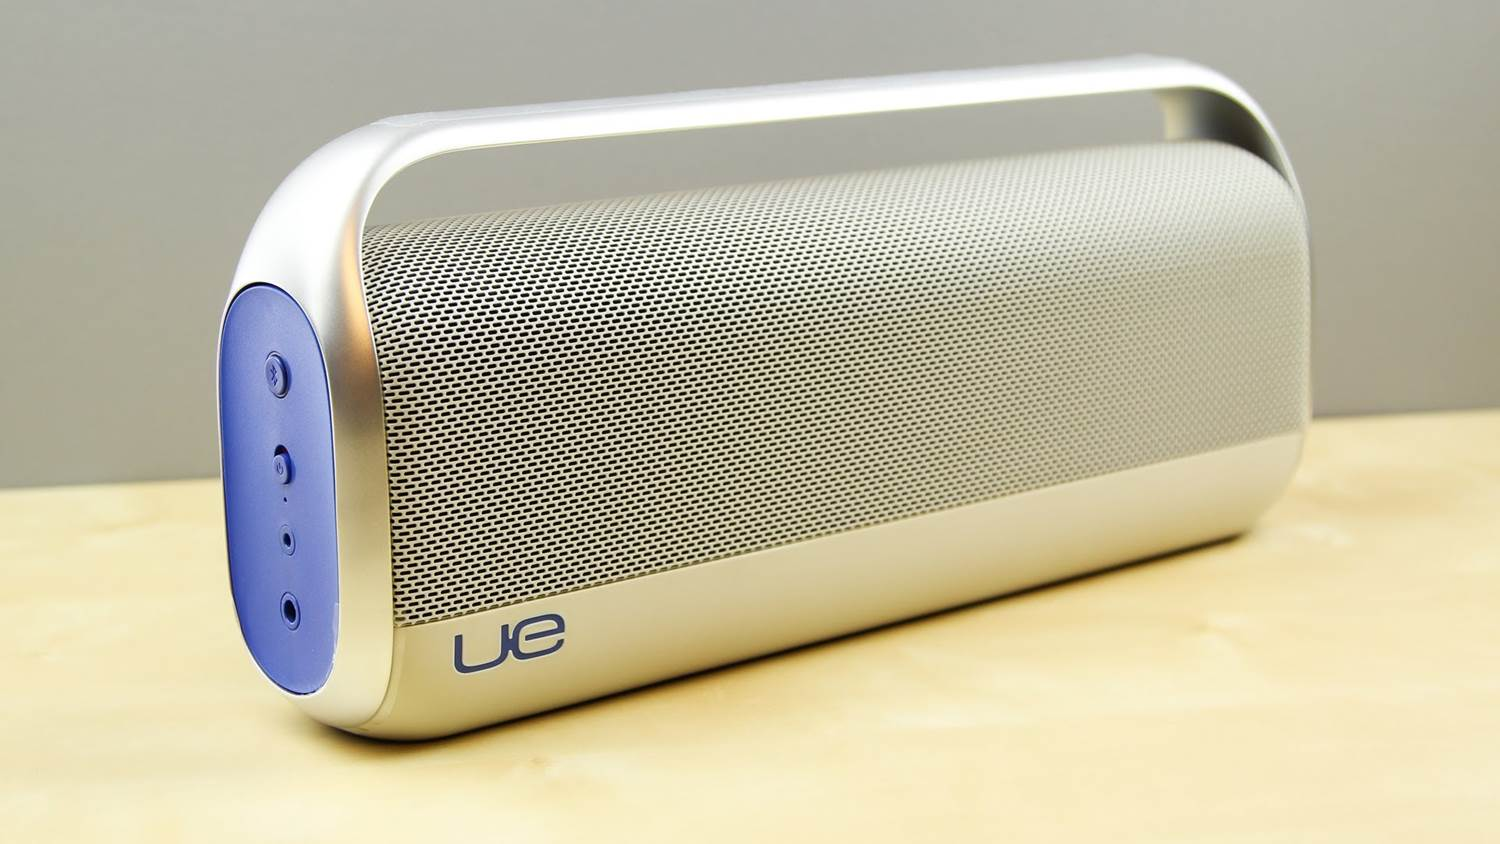 Logitech UE Boombox Wireless Speaker